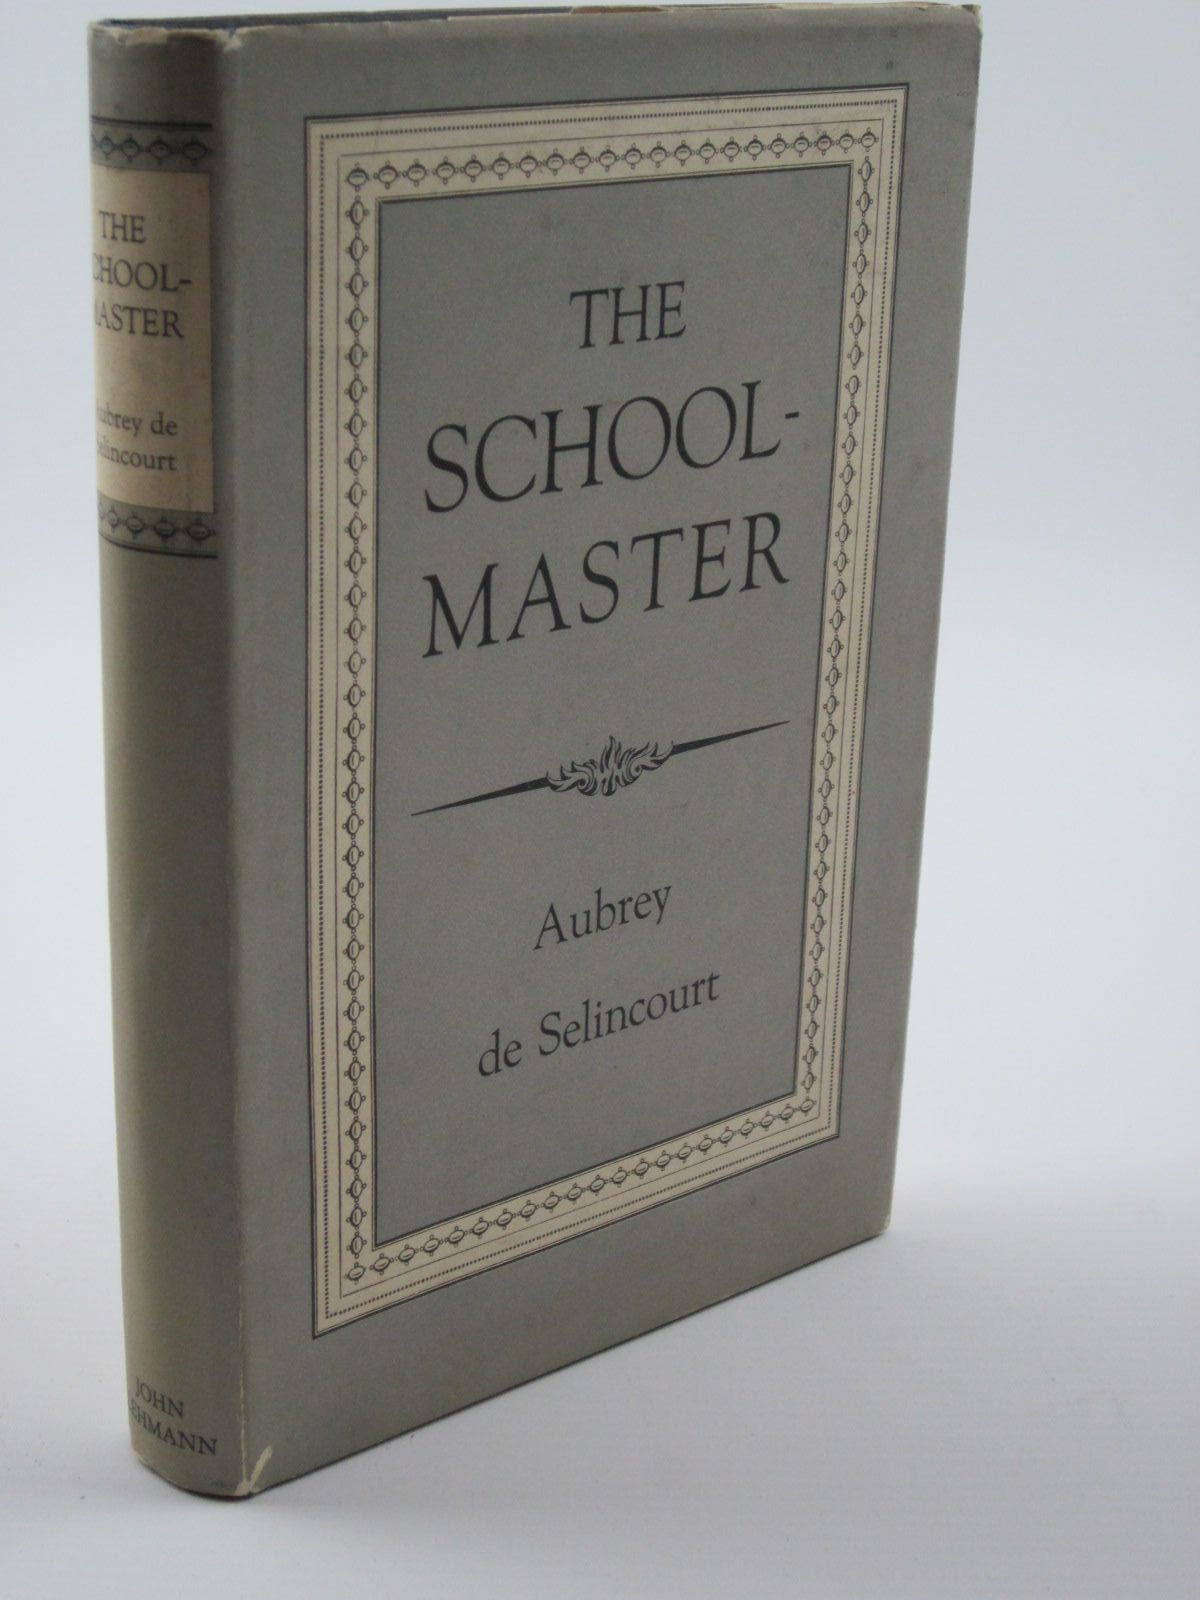 Photo of THE SCHOOLMASTER written by De Selincourt, Aubrey published by John Lehmann (STOCK CODE: 1309291)  for sale by Stella & Rose's Books